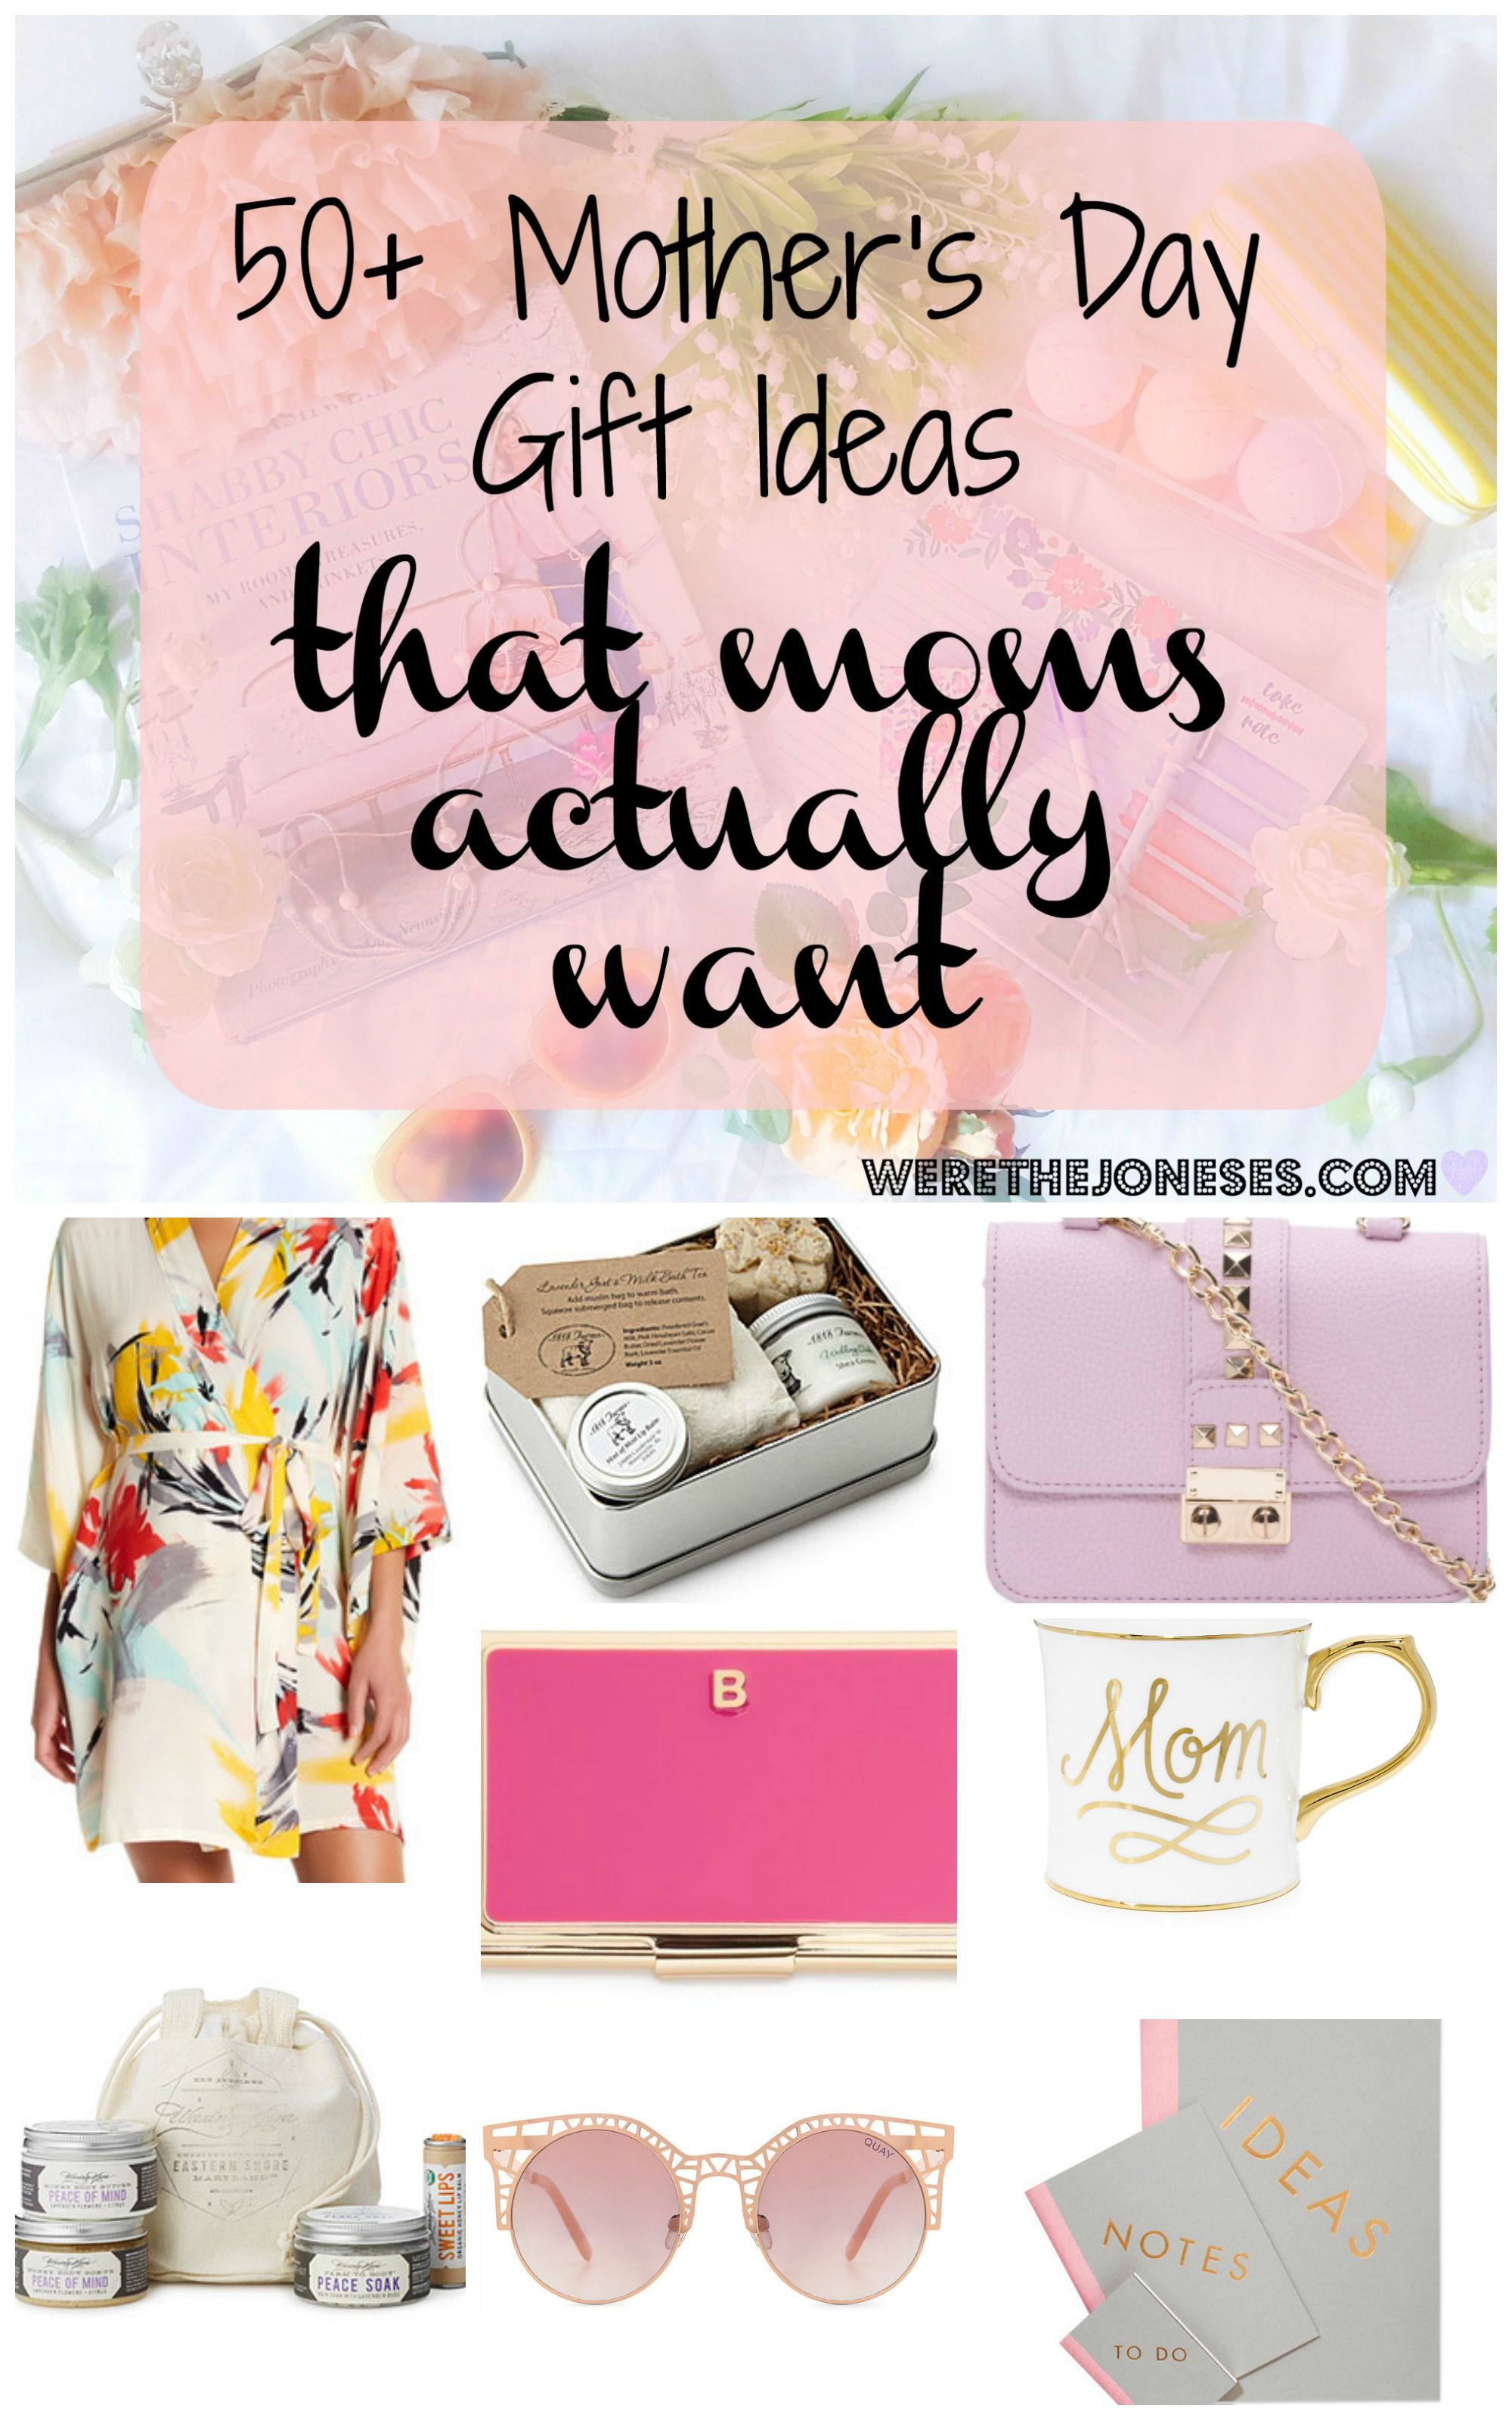 Mothers Day Gift Ideas 50 That Moms Actually Want Mom Gifts Mama Guide New Wish List Fashion Spa